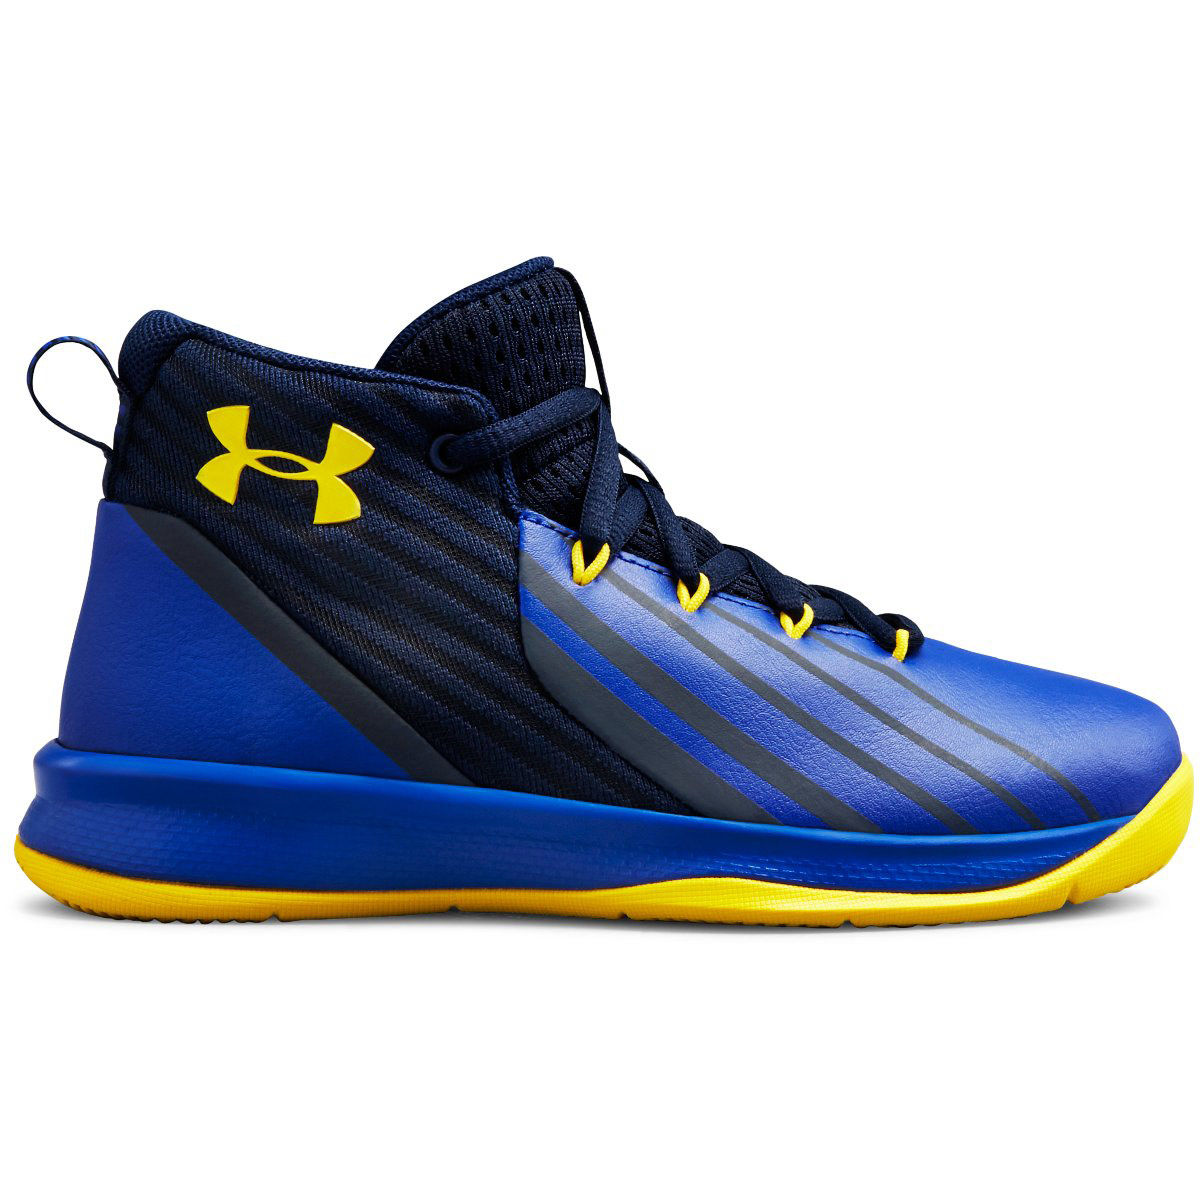 Under Armour Lockdown 3 Little Kids Basketball Shoe